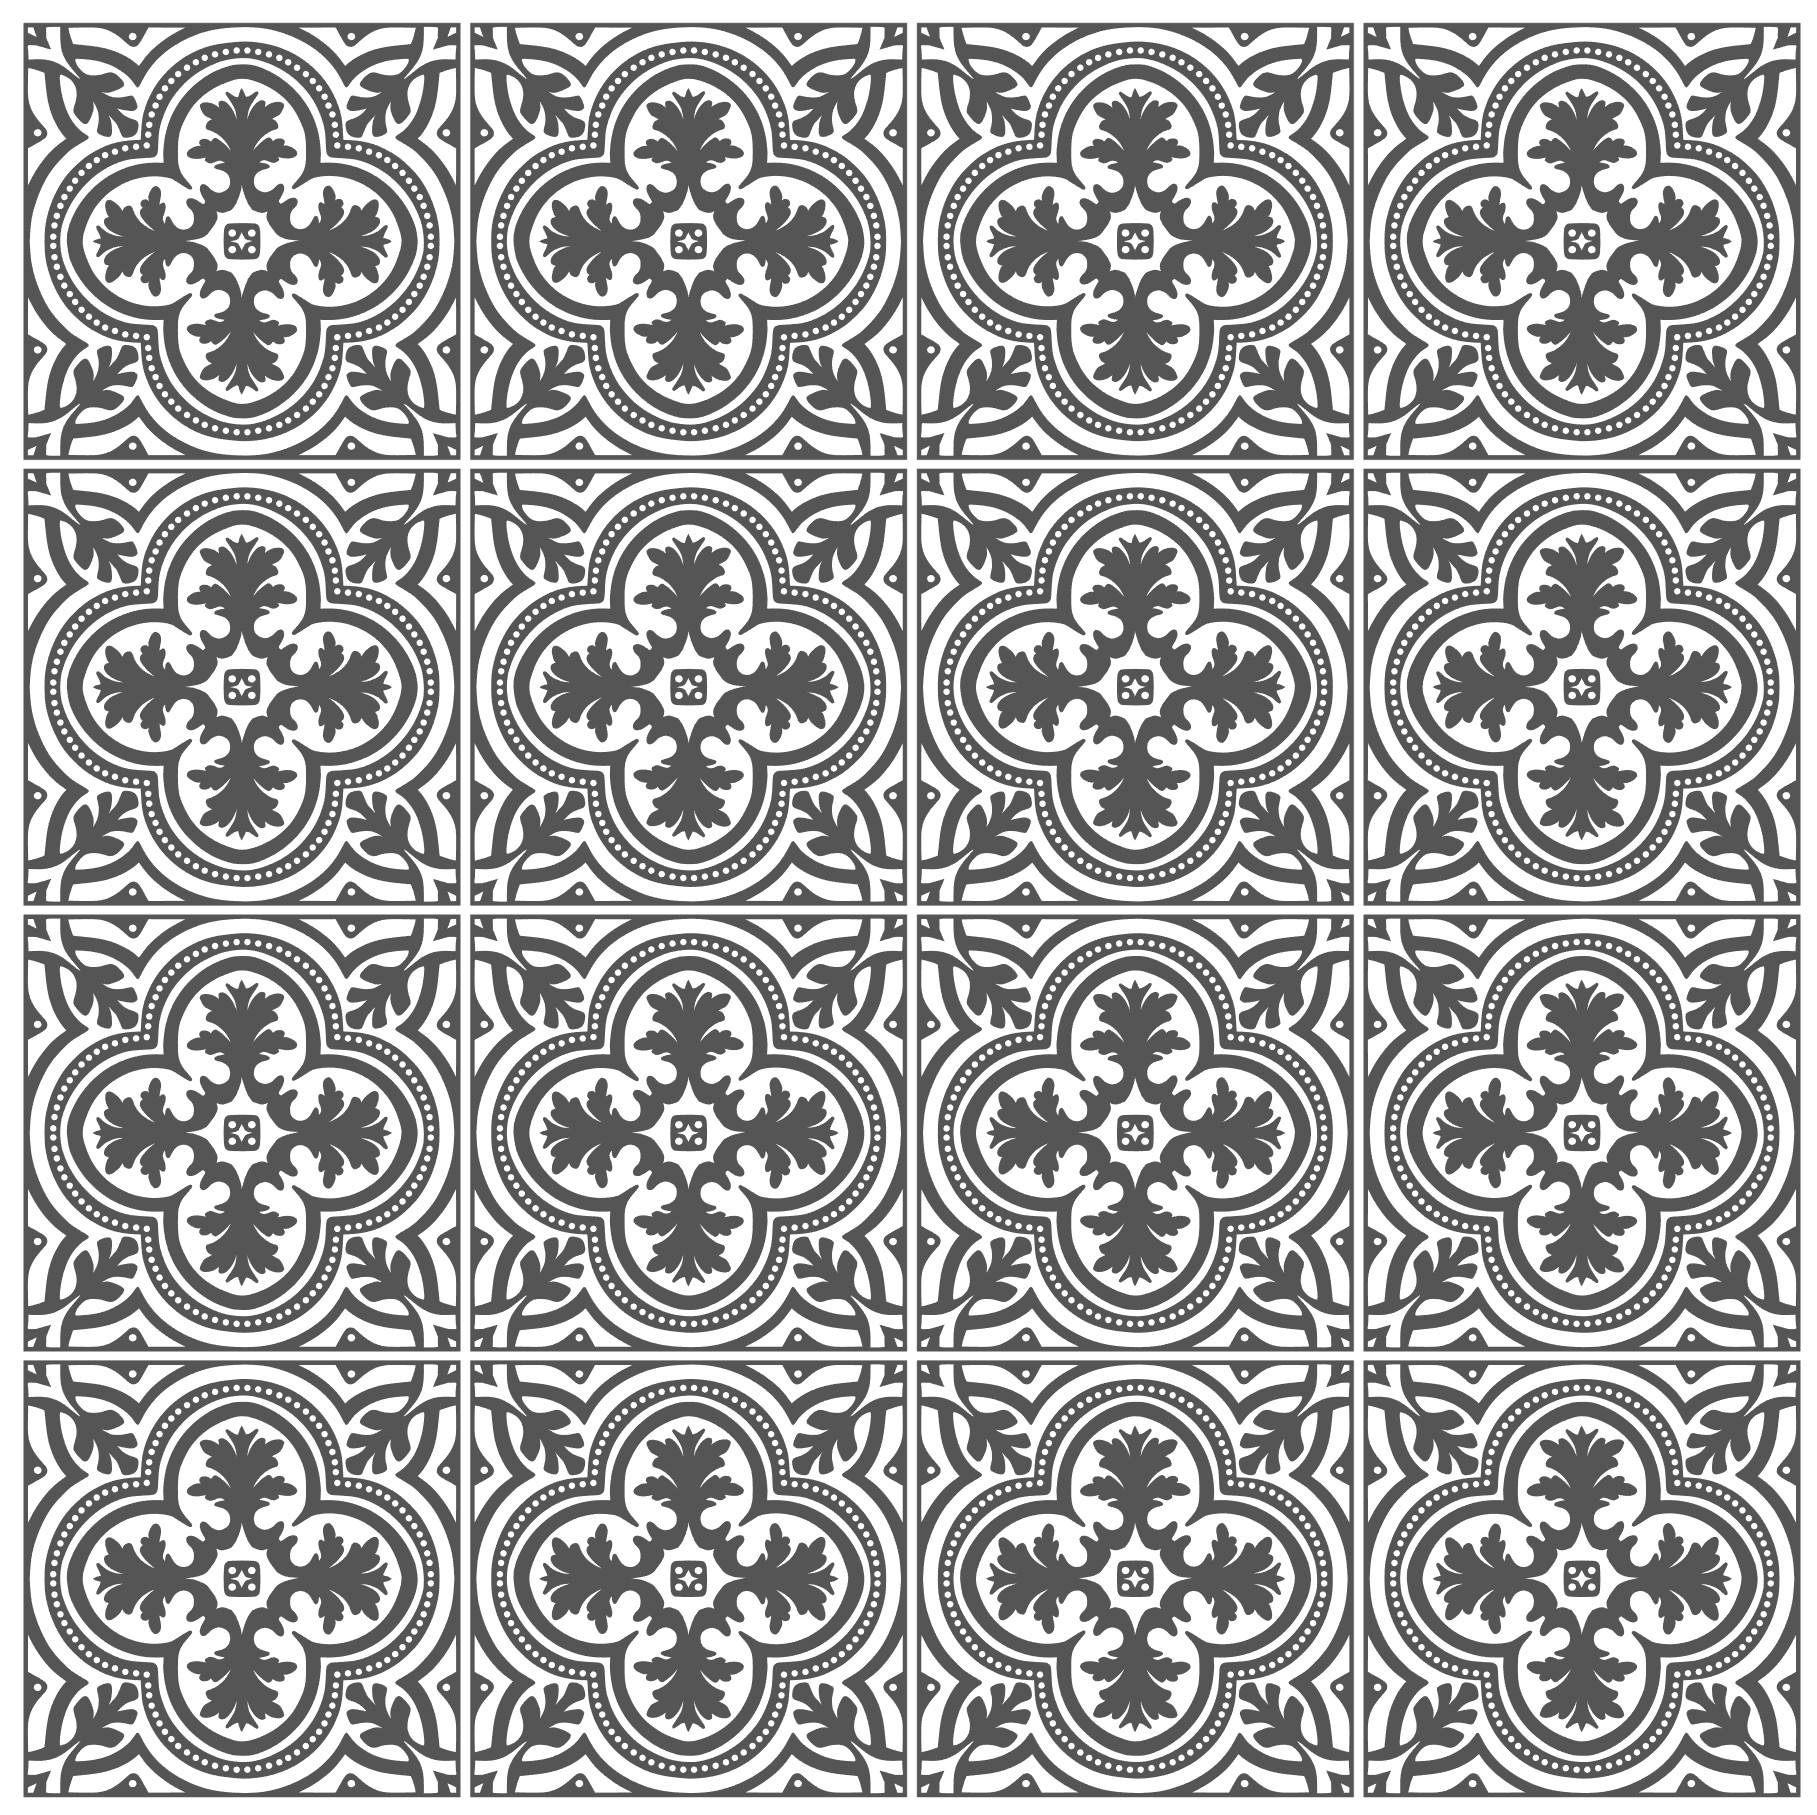 Spanish Tile 1 SVG, Stencil Template and Printable example image 2